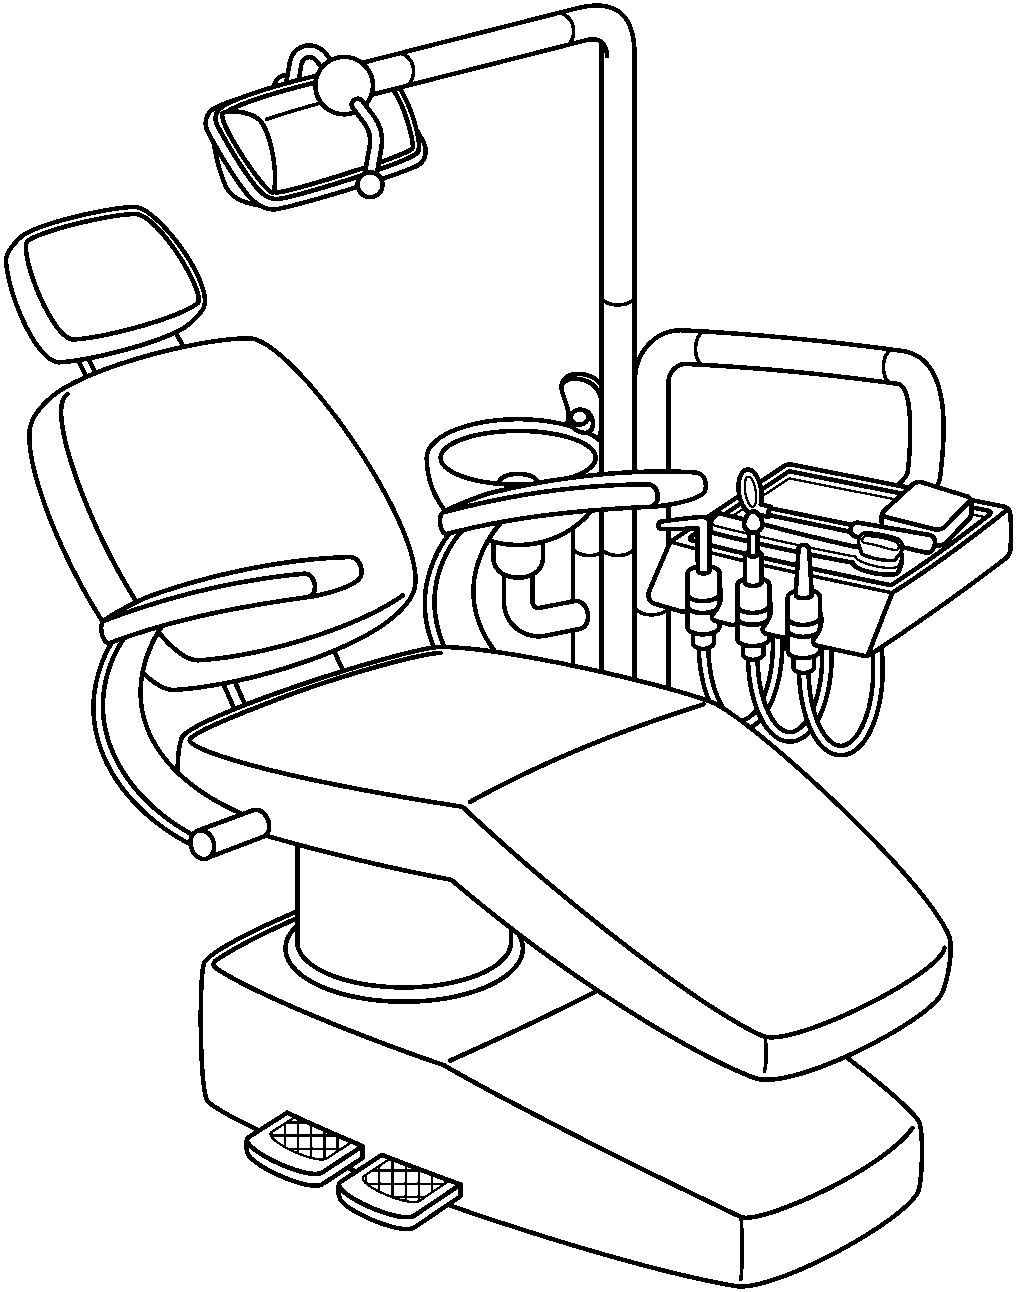 Dentist Tools Clipart Black And White.